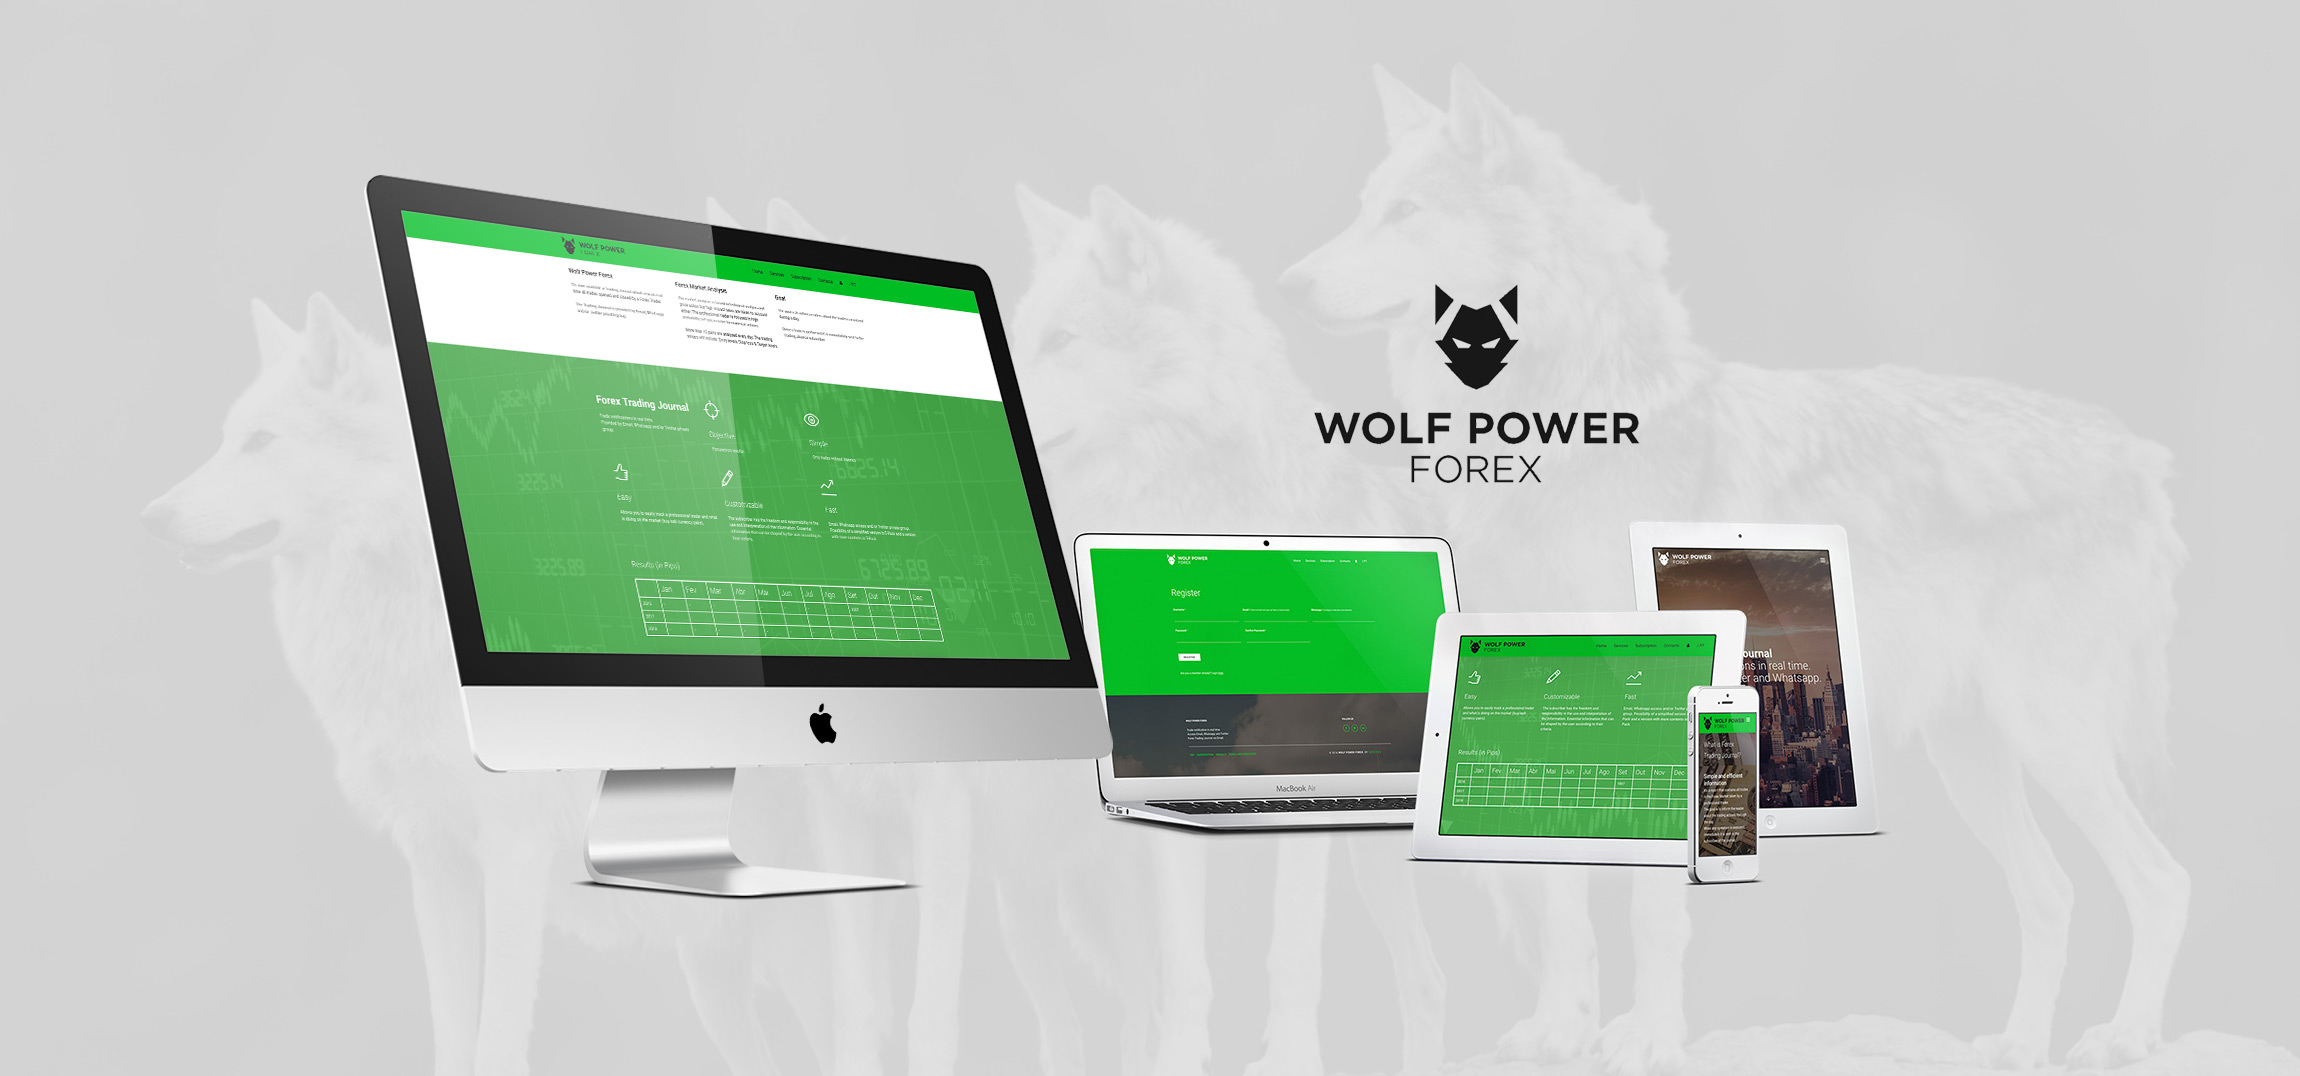 Wolf Power Forex